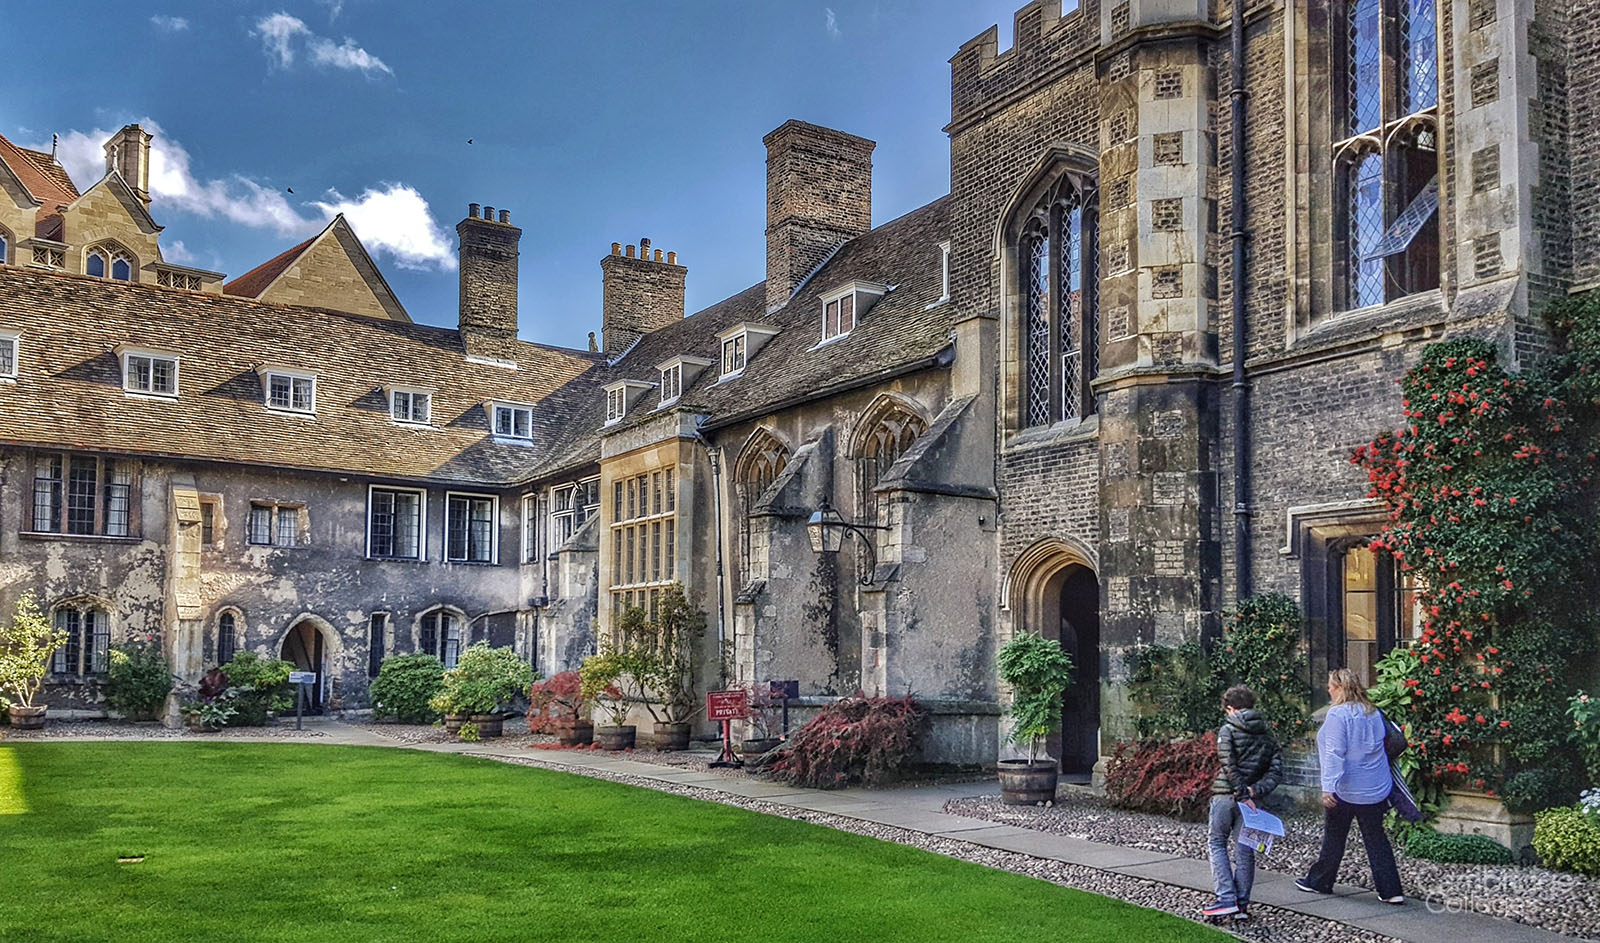 Christ's college old court